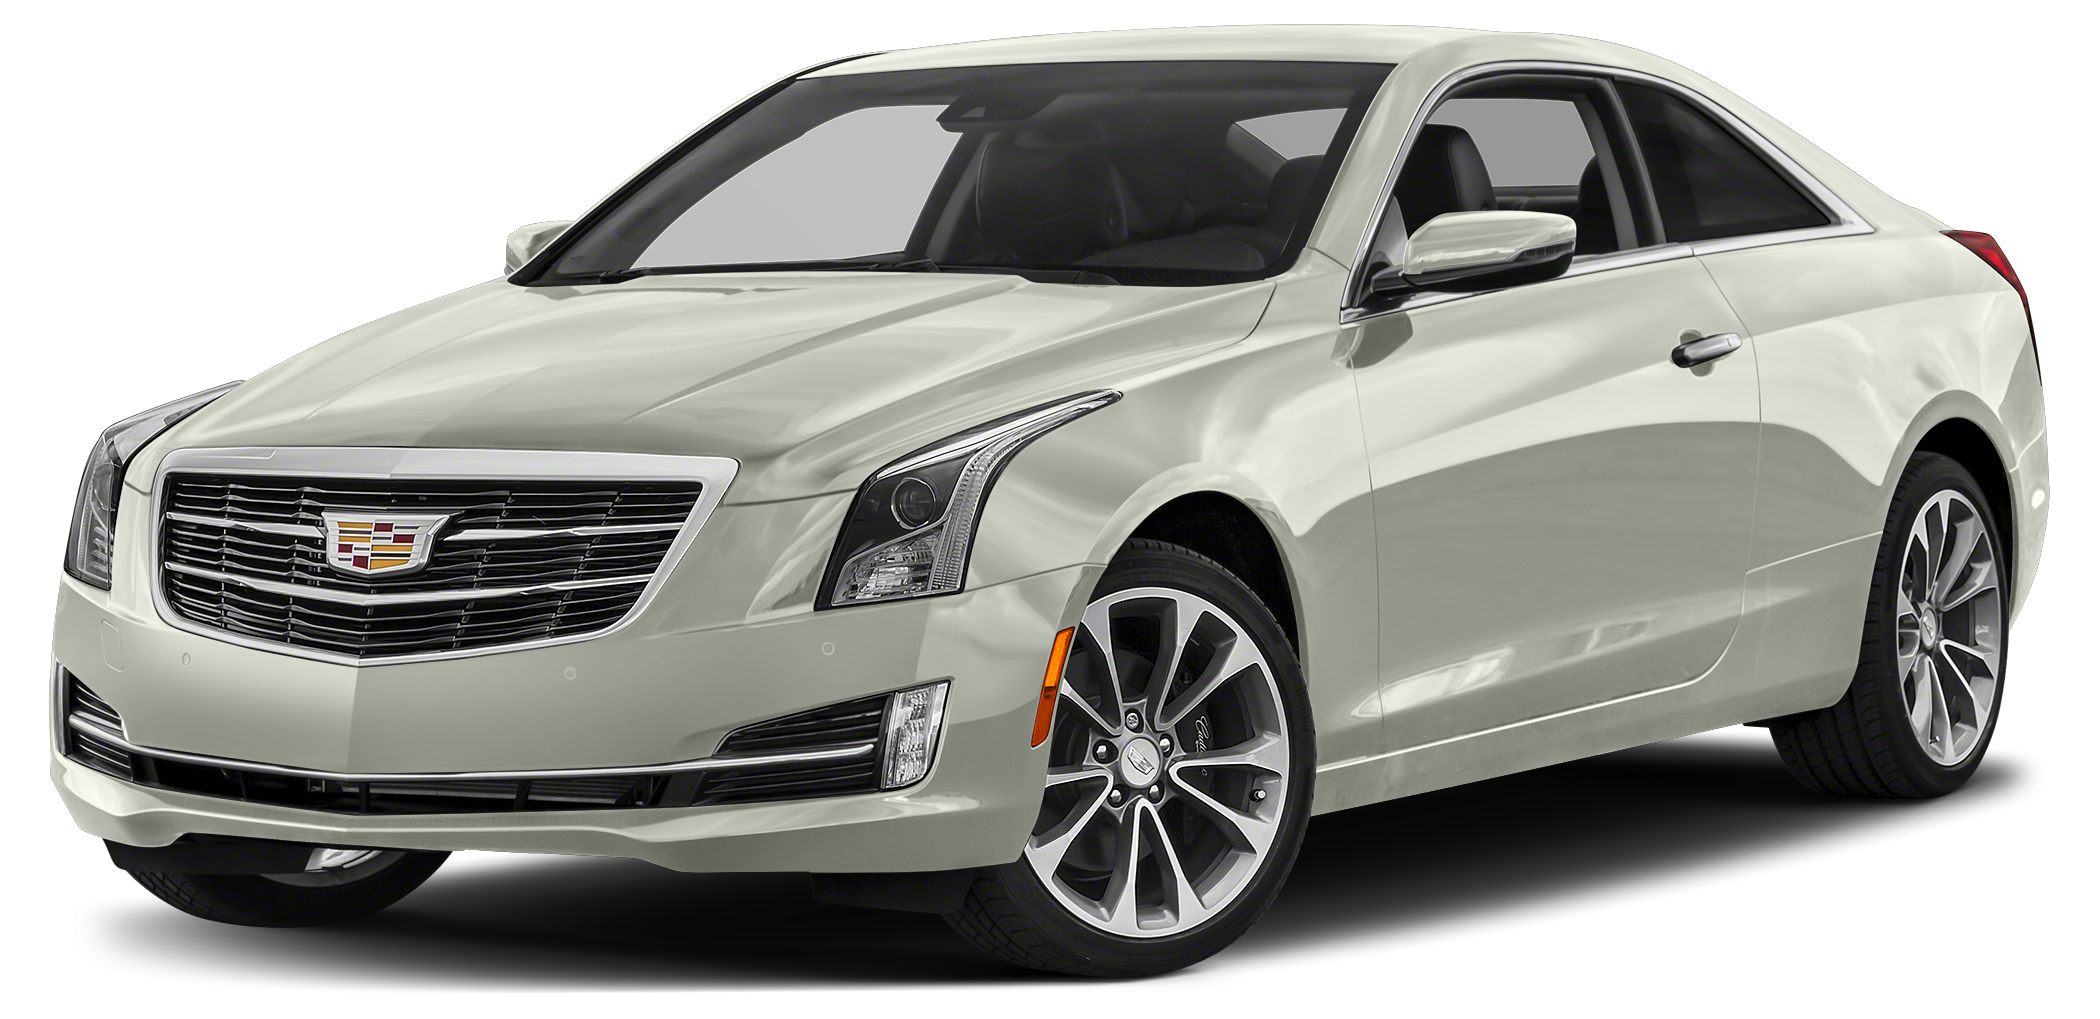 2018 Cadillac ATS 20 Turbo Miles 5Color Crystal White Stock 180258 VIN 1G6AA1RX5J0130660